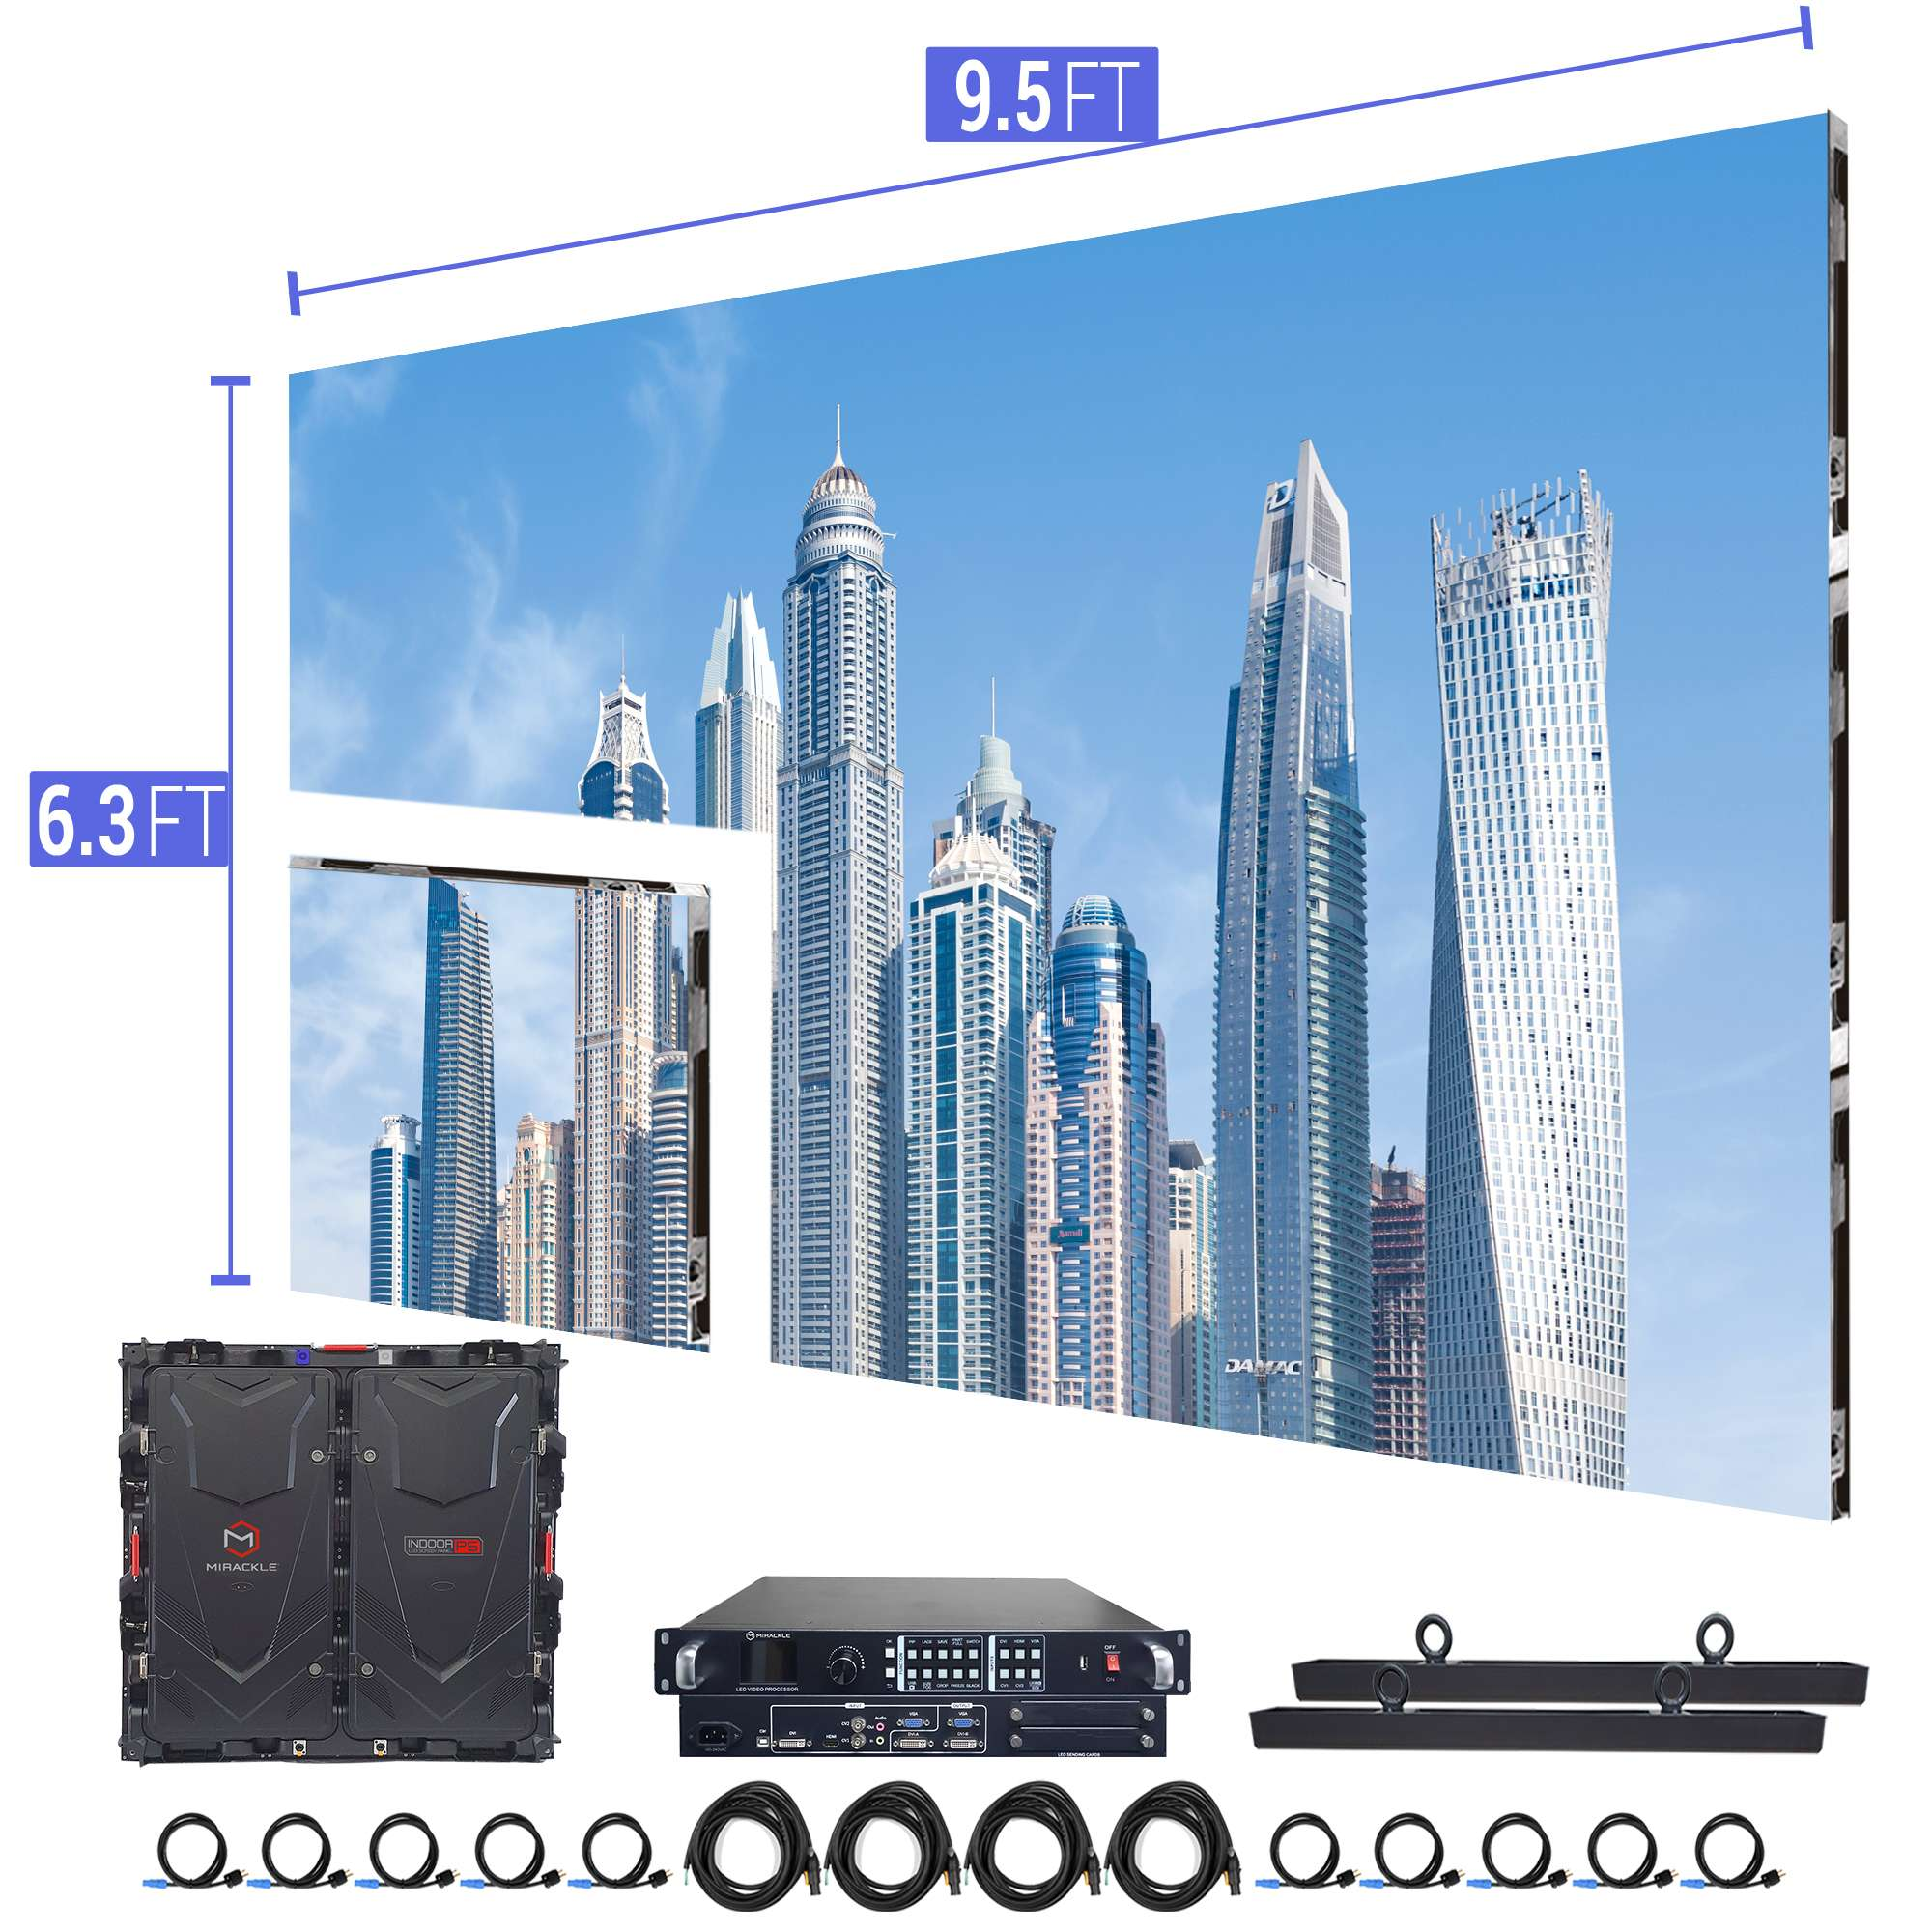 LED-Video-Wall-for-Church-9.5′-6.3′-P5mm-Indoor